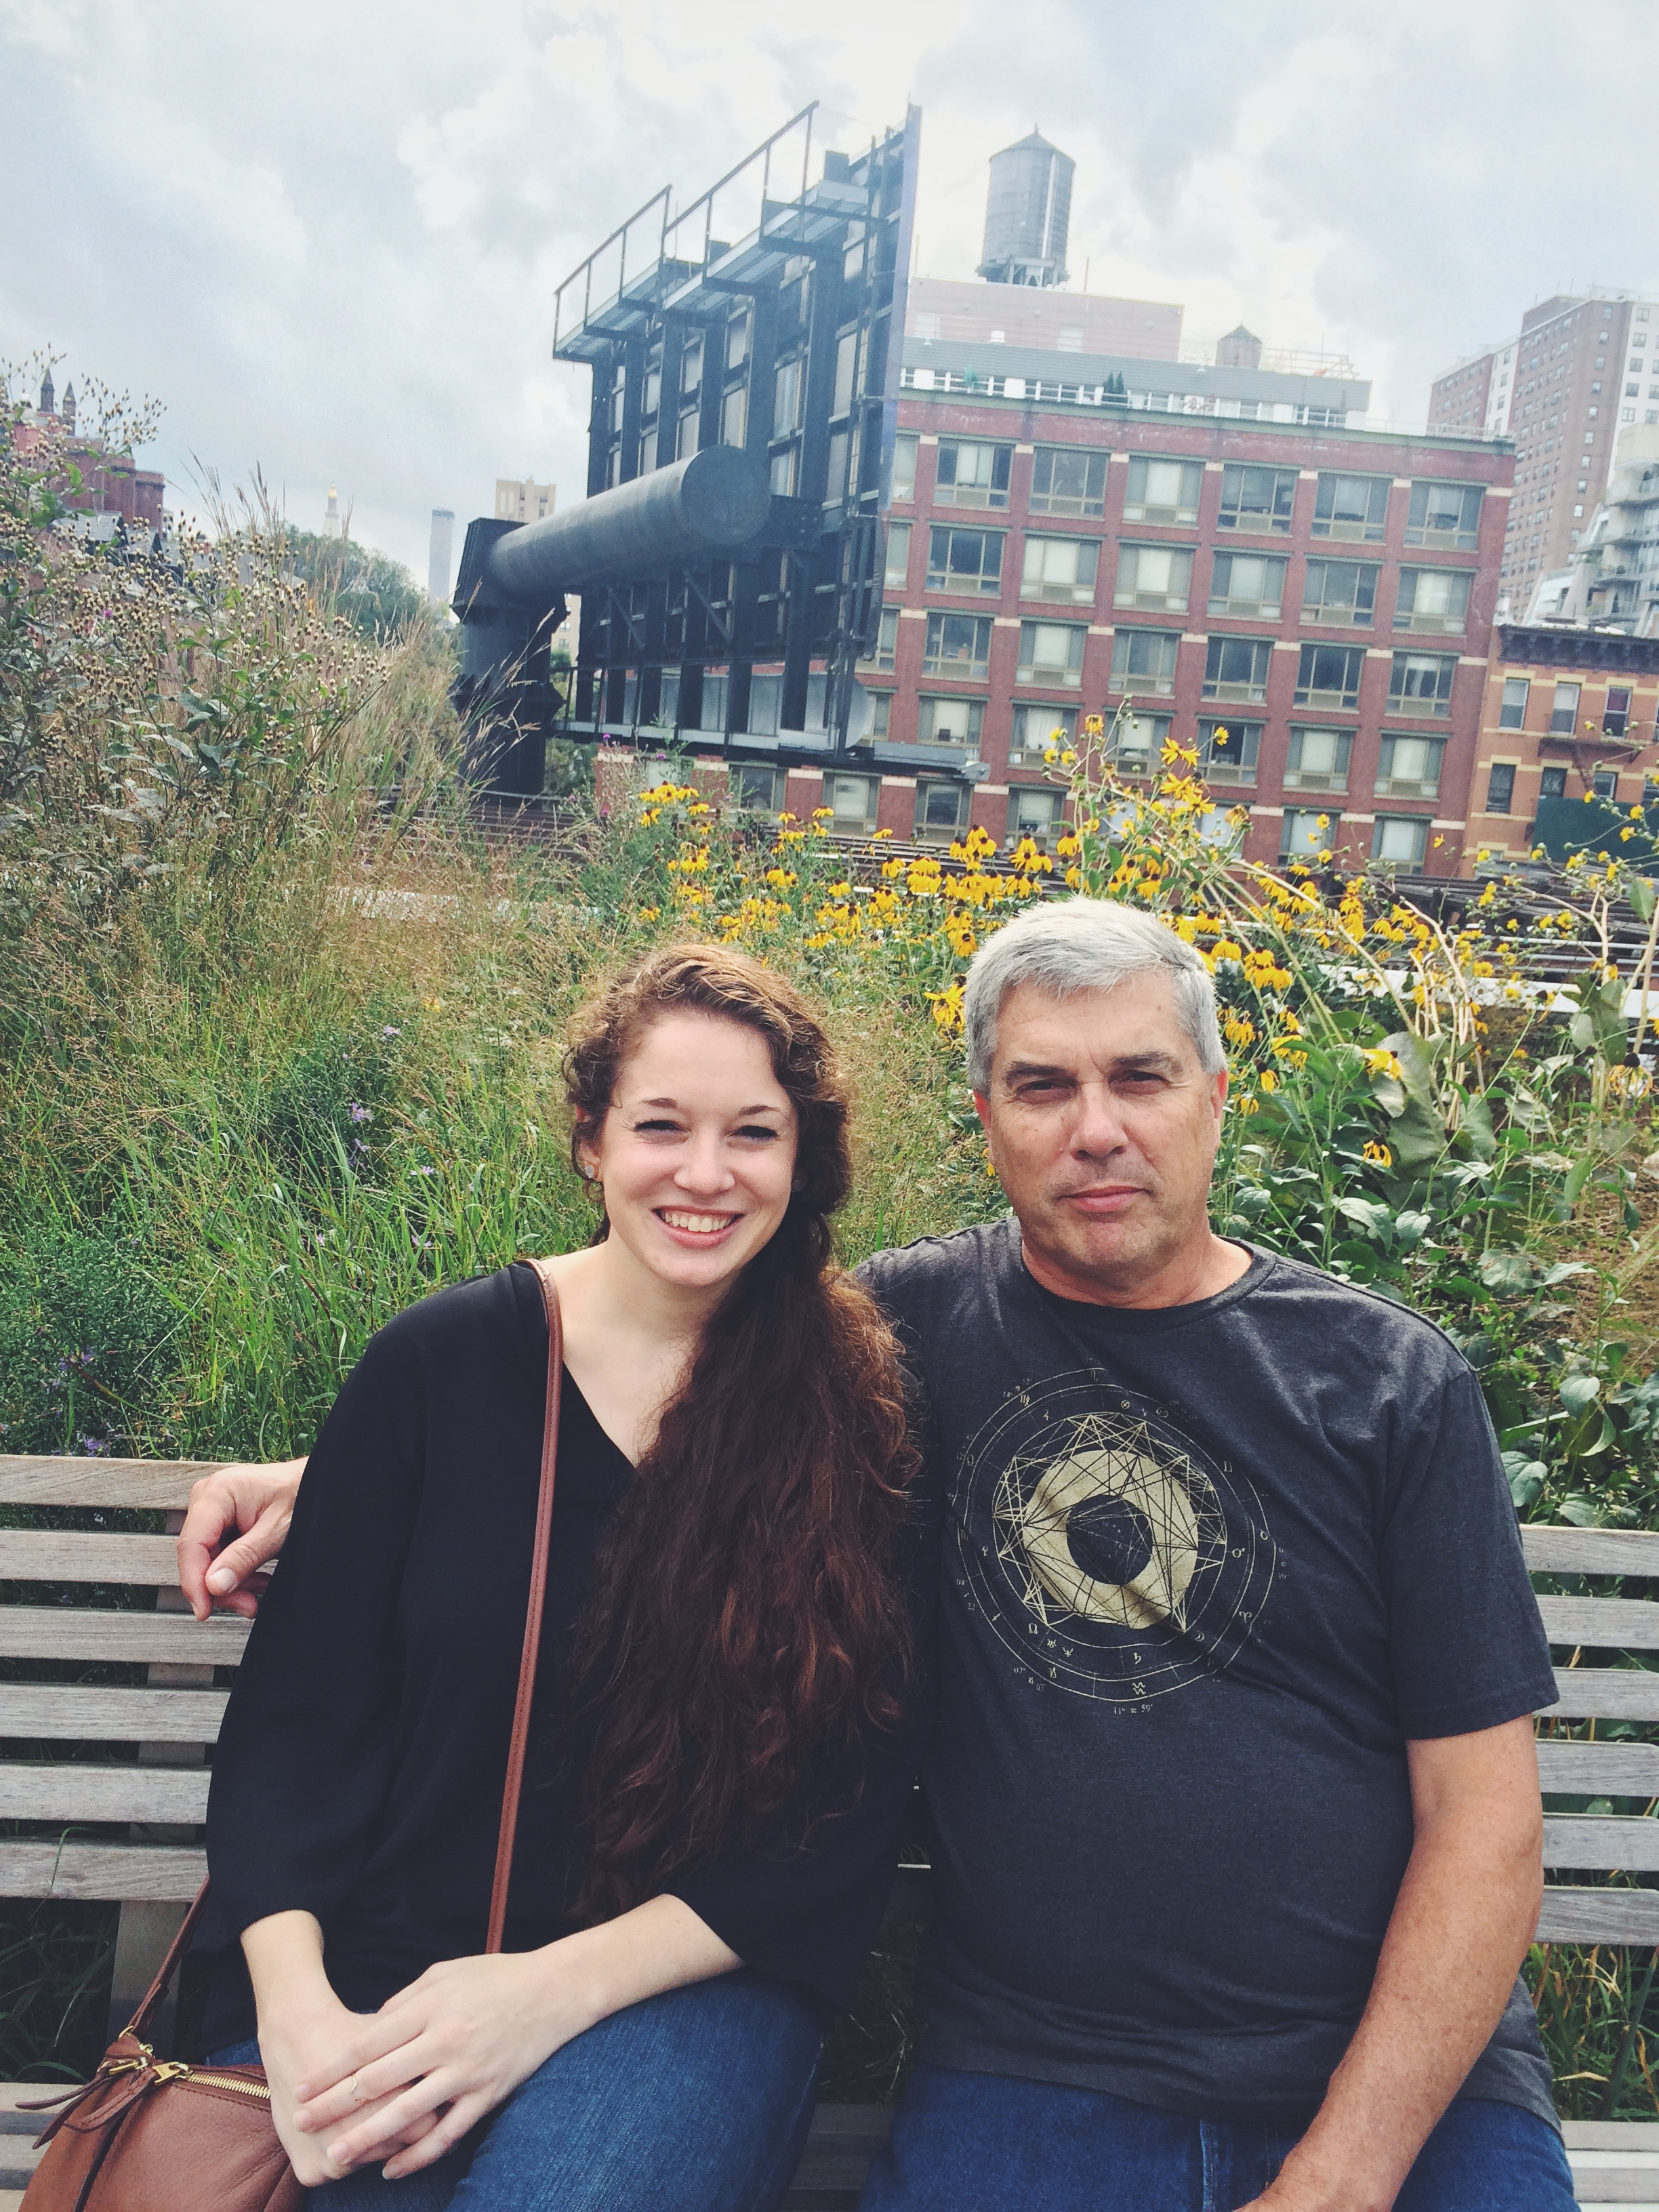 Me and my dad on the Highline Walking Tour.